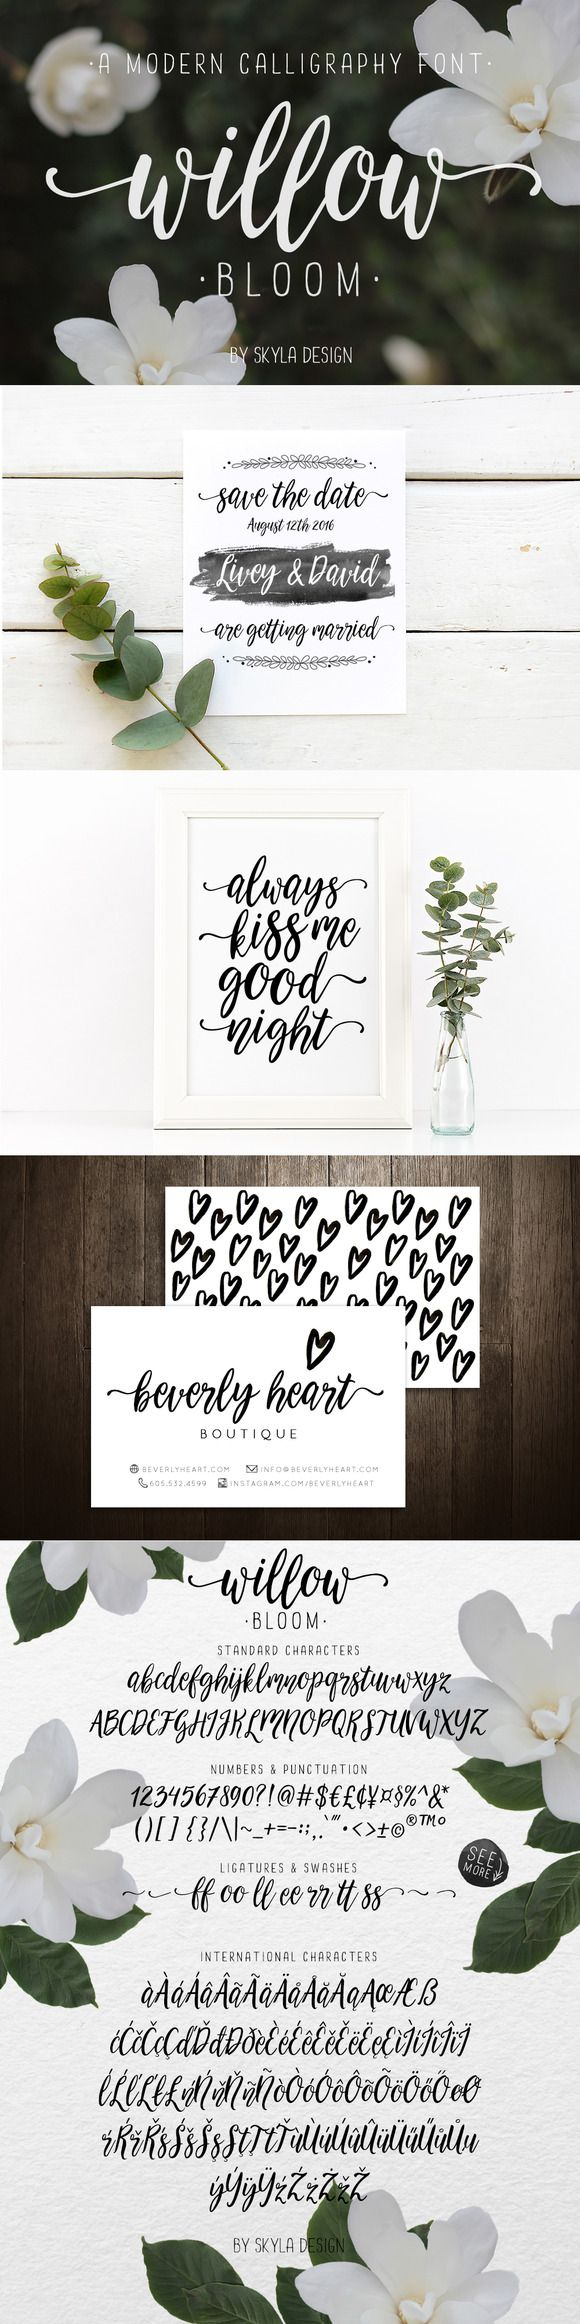 Calligraphy font - Willow Bloom by skyladesign on @creativemarket